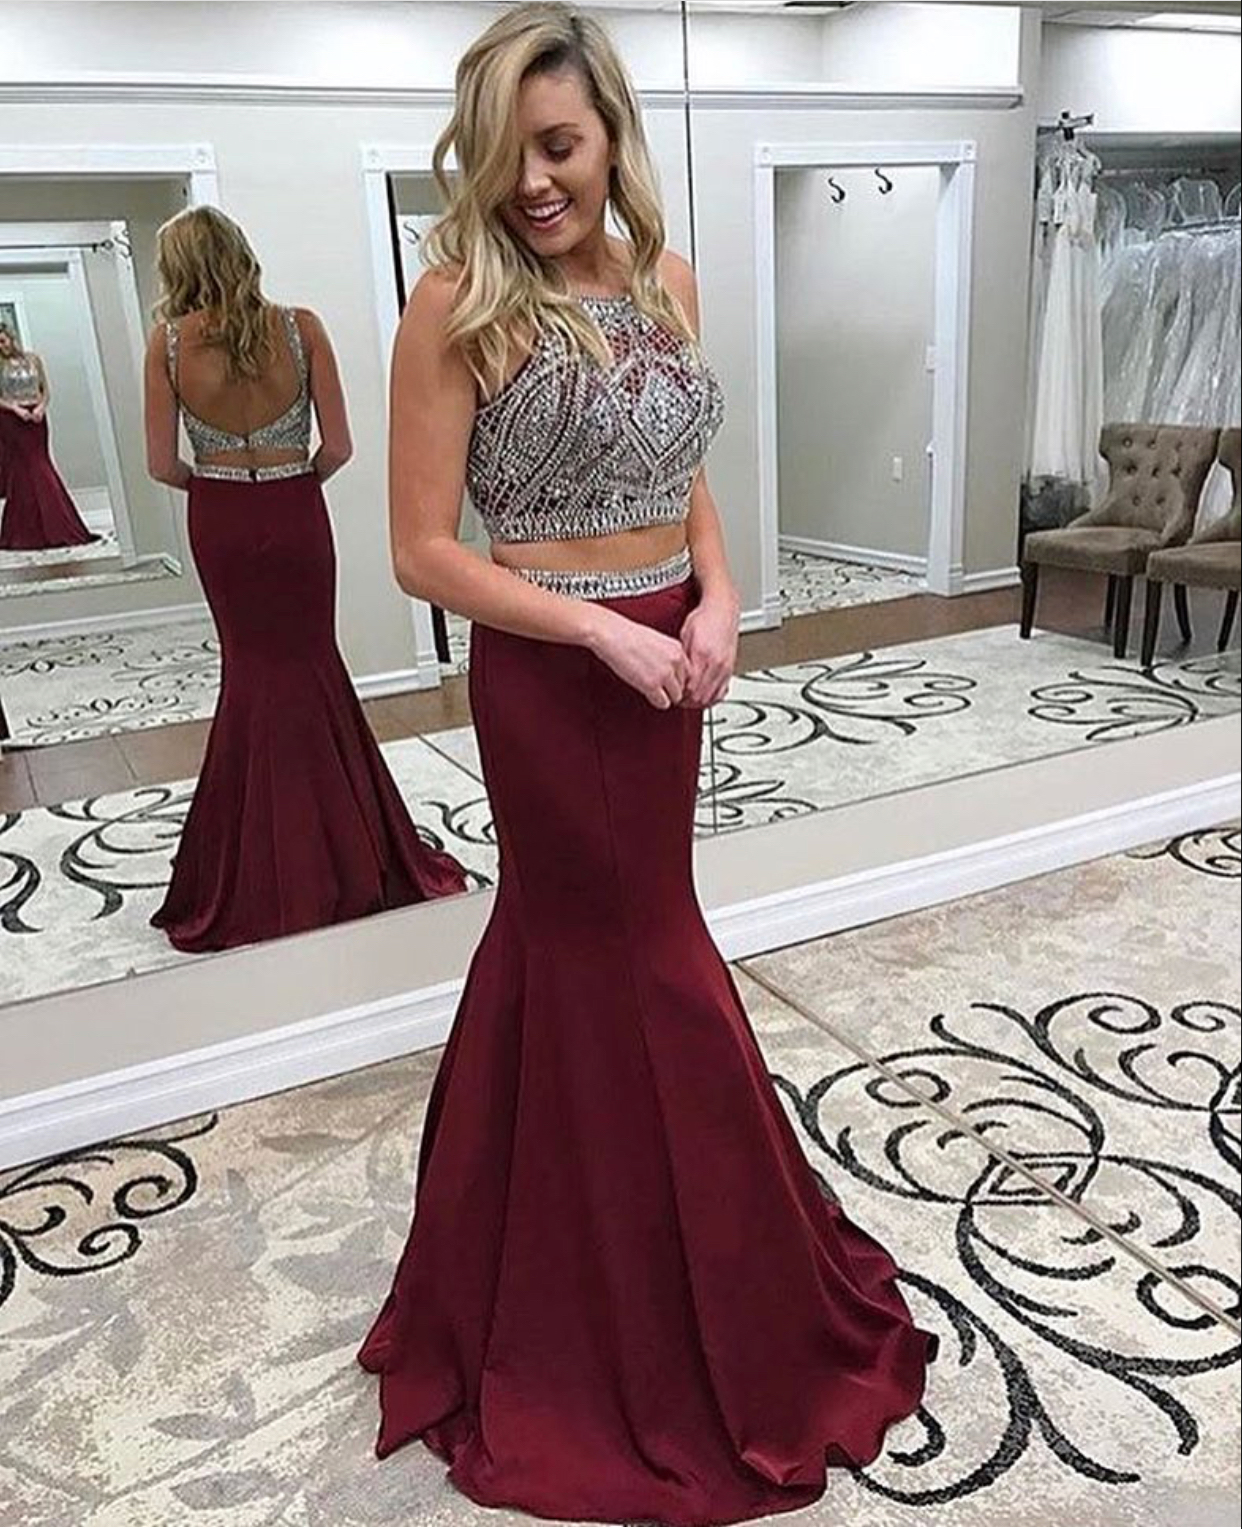 Cheap prom dresses 2017,Burgundy Satin Prom Dress,2 Pieces Prom Dress,Mermaid Formal Gown,Fashion Prom Dress,Sexy Party Dress,Custom Made Evening Dress